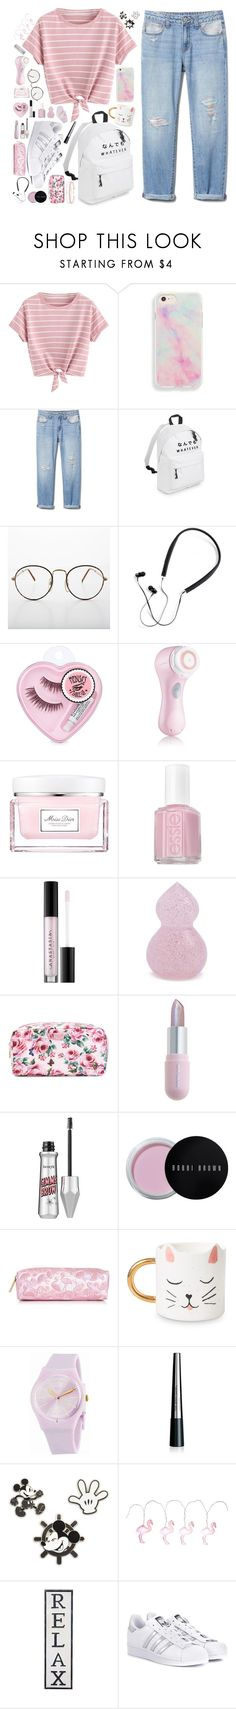 """As you please"" by meowingcat ❤ liked on Polyvore featuring Polaroid, Clarisonic, Christian Dior, Essie, Anastasia Beverly Hills, Forever 21, Dolce&Gabbana, Winky Lux, Bobbi Brown Cosmetics and Swatch"